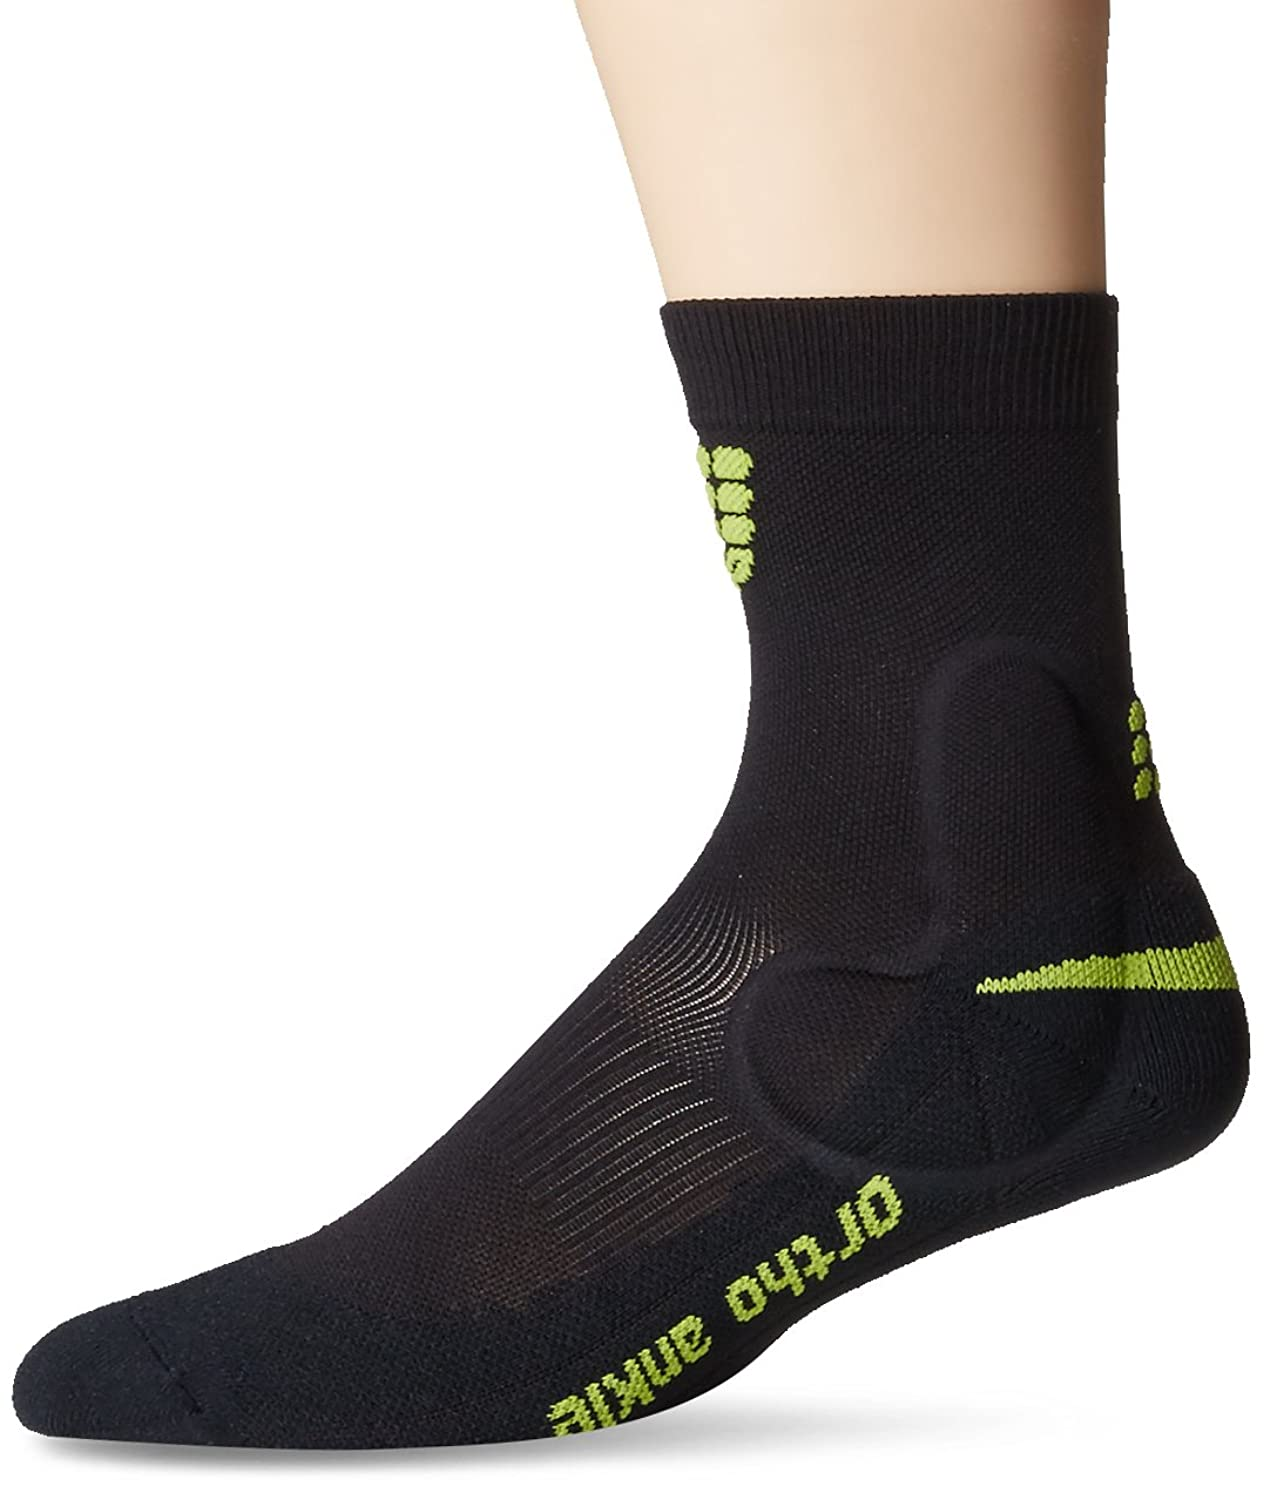 CEP Herren Laufsocken Orthe Ankle Support Short WO58